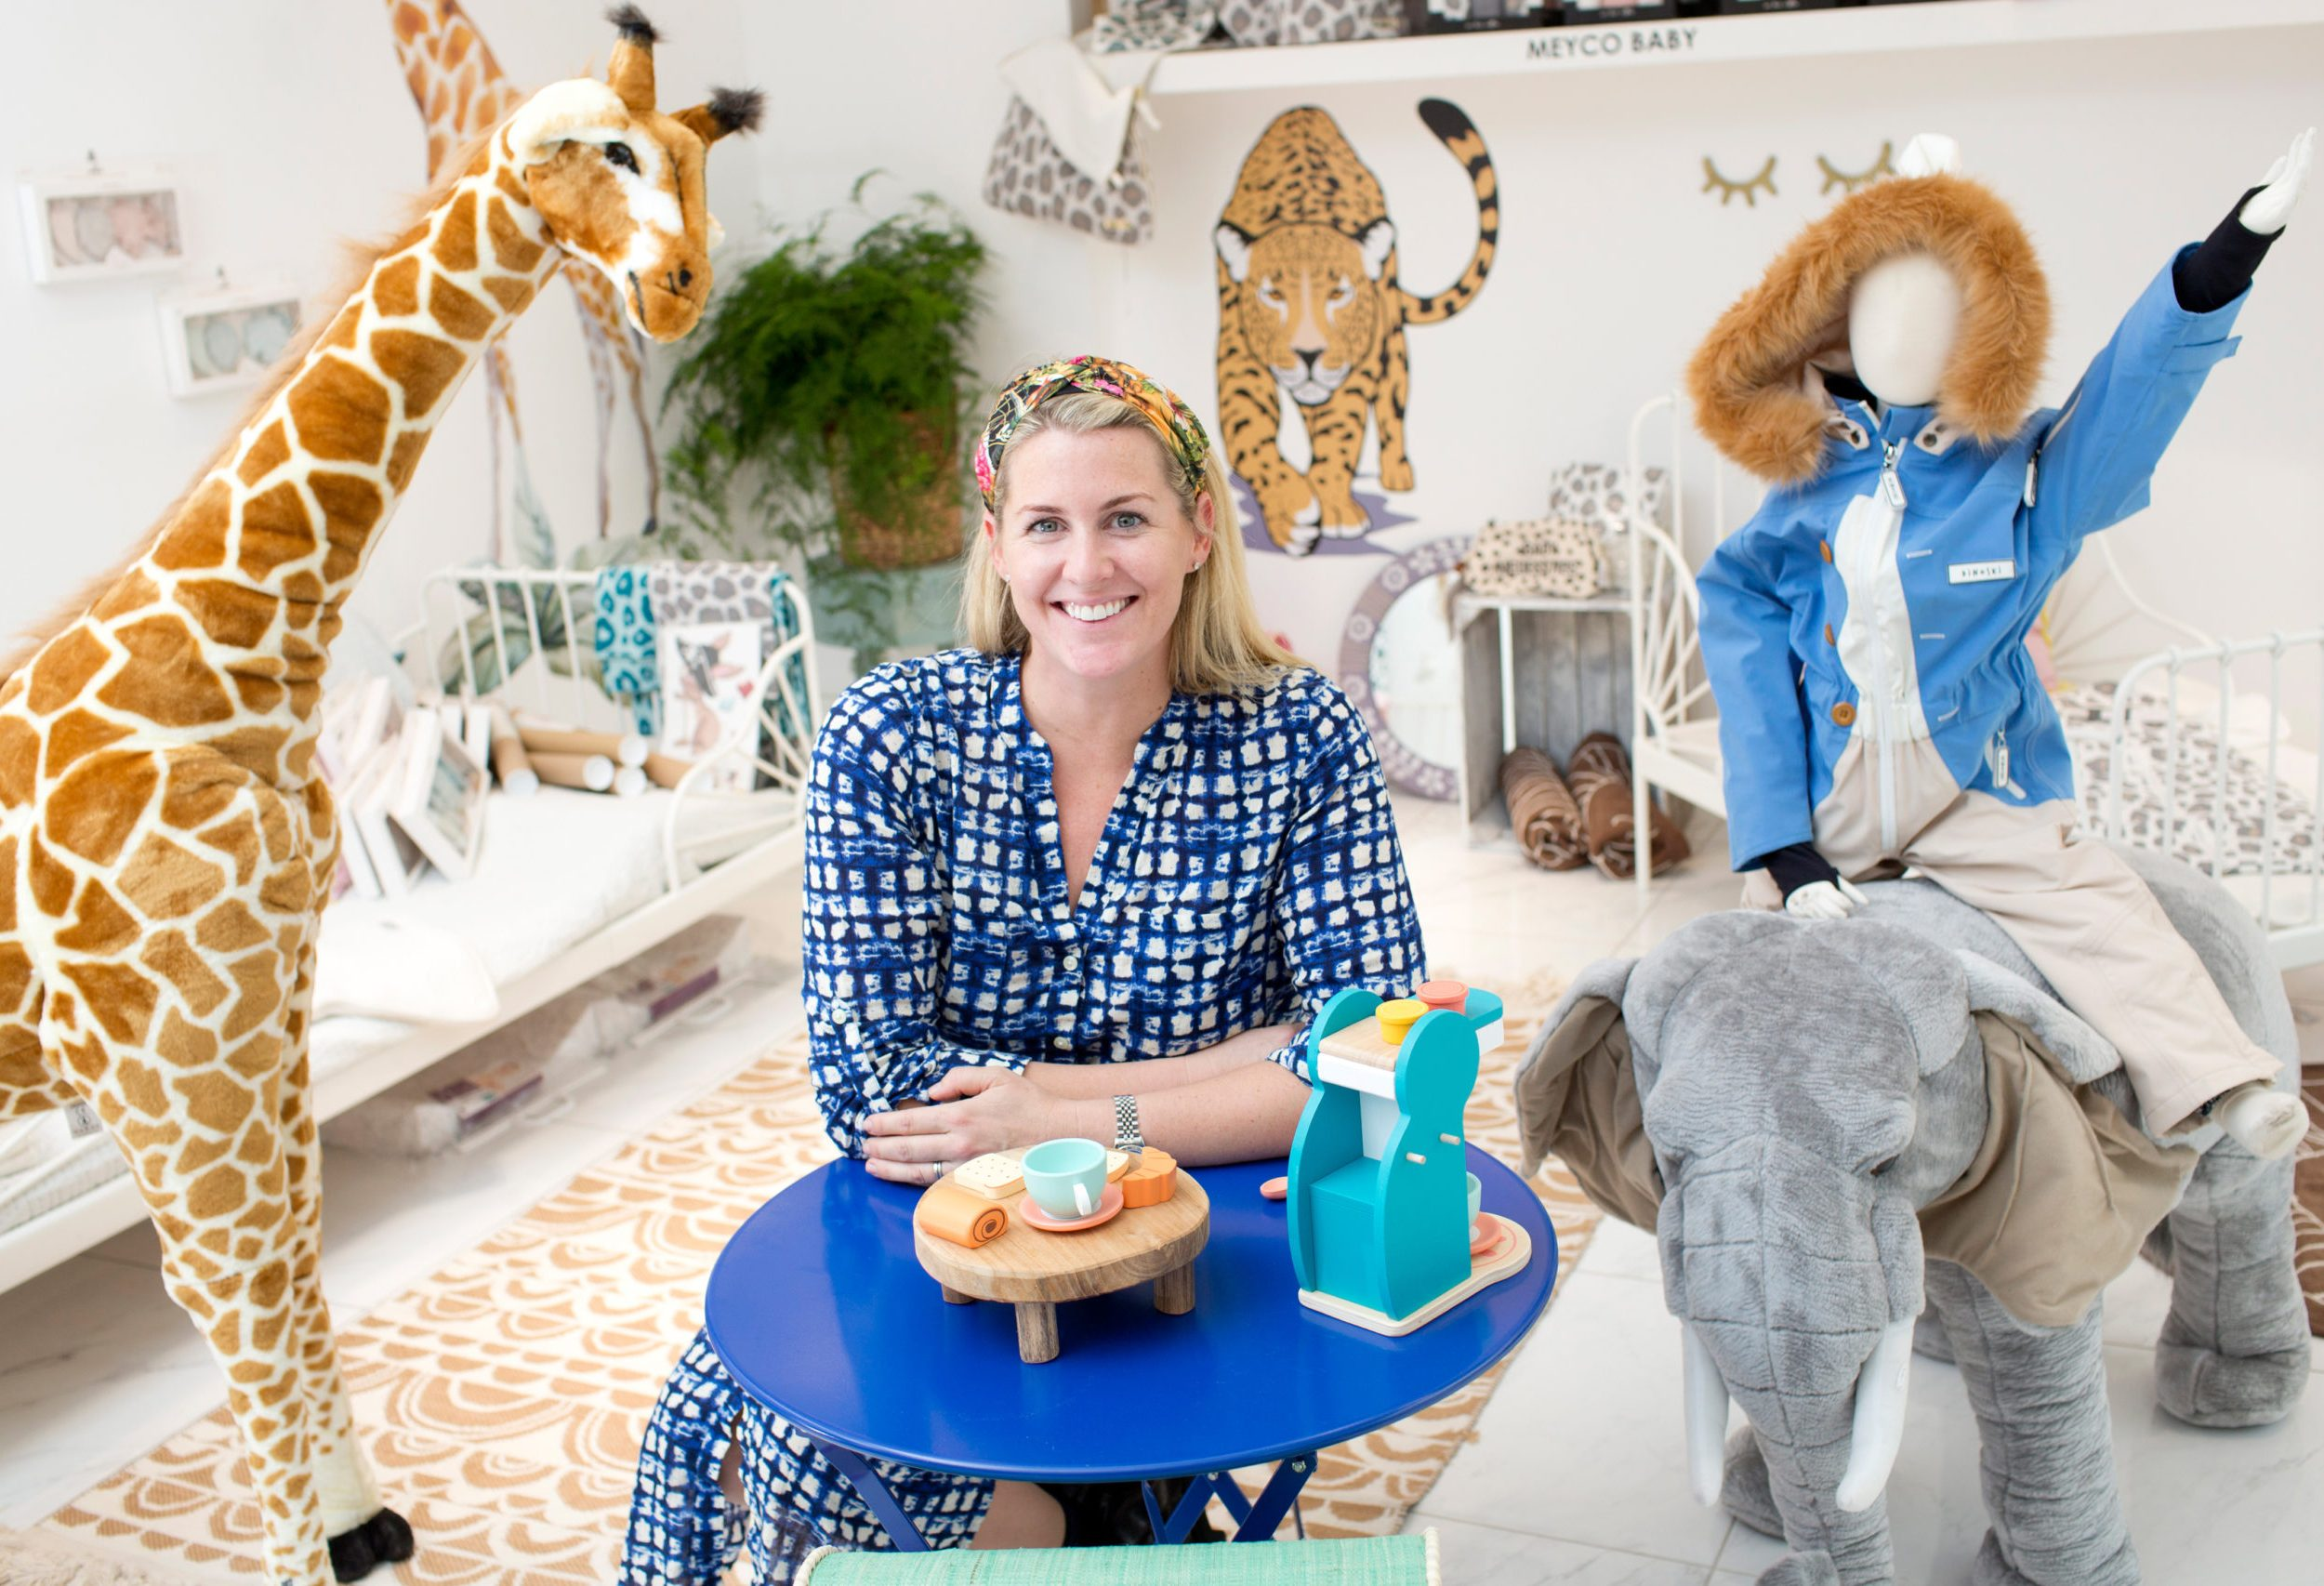 Woman sat at table surrounded by children's toys and furniture